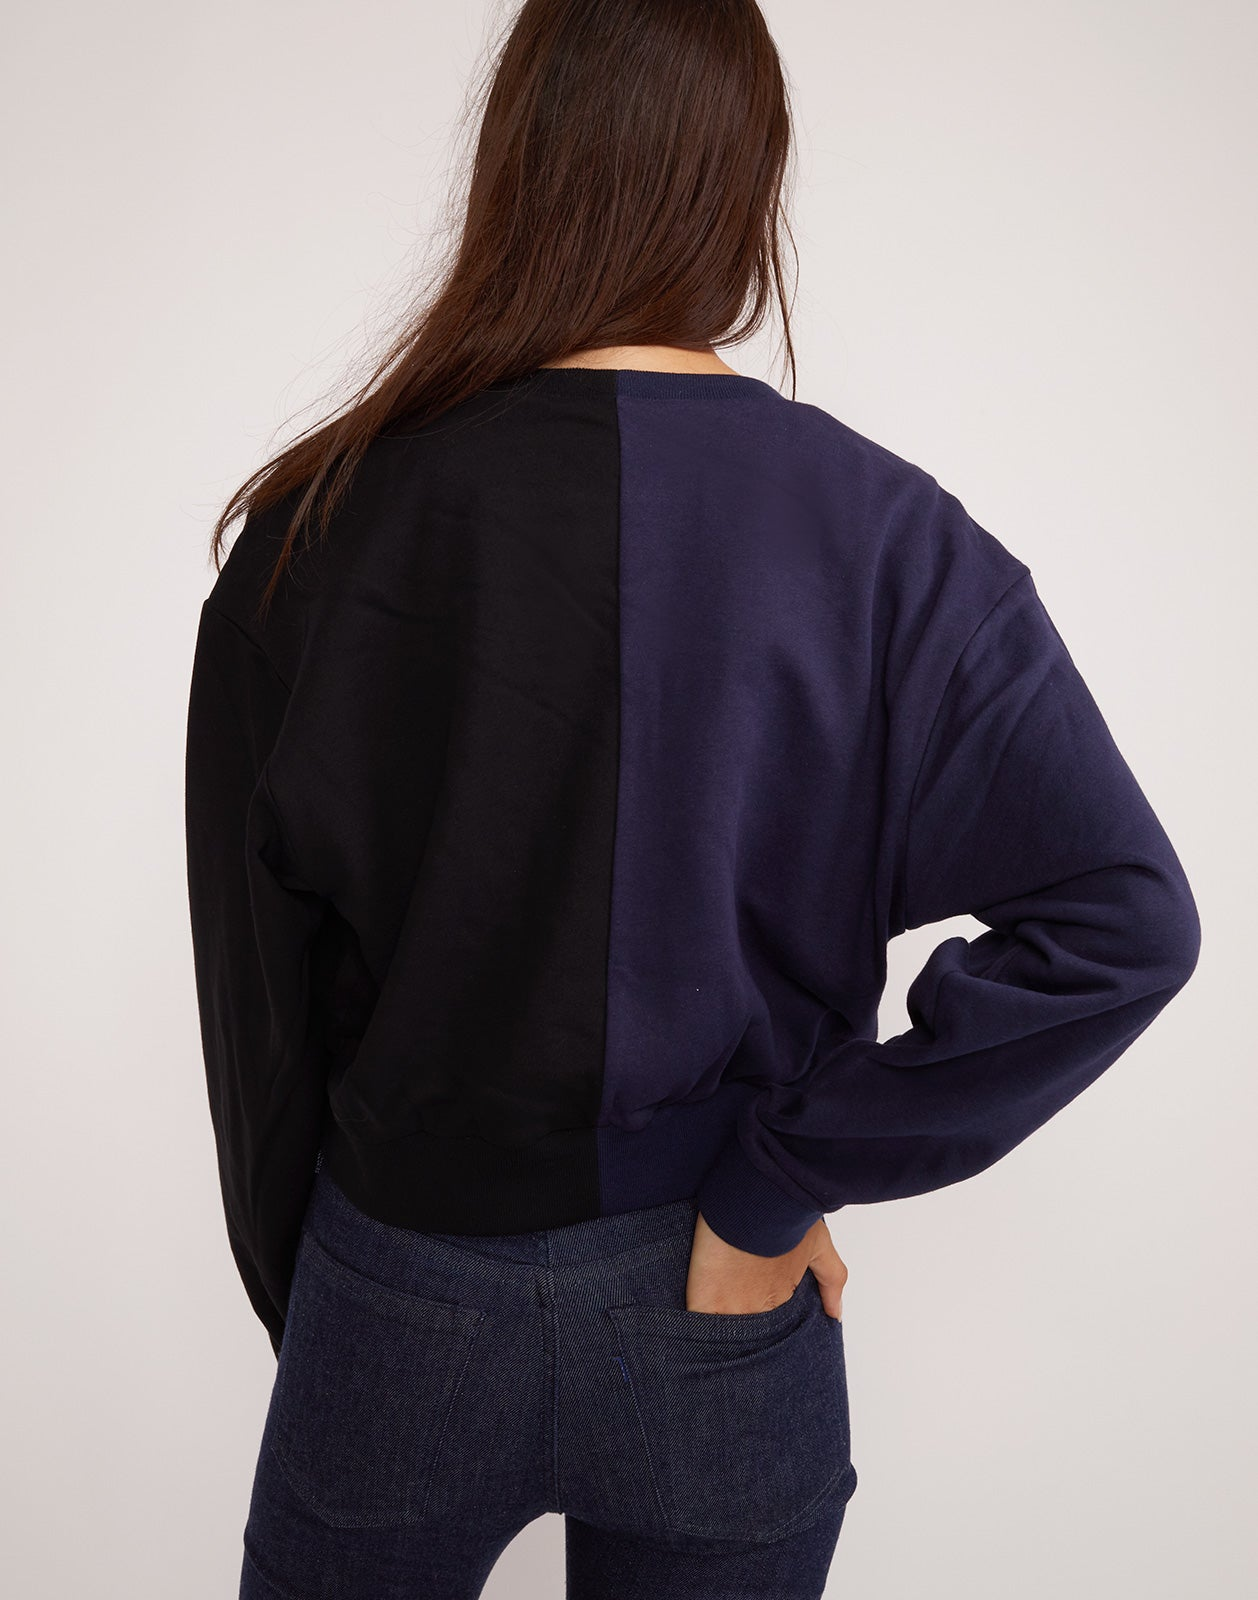 Back view of the CaliYork cropped sweatshirt in half navy half black.